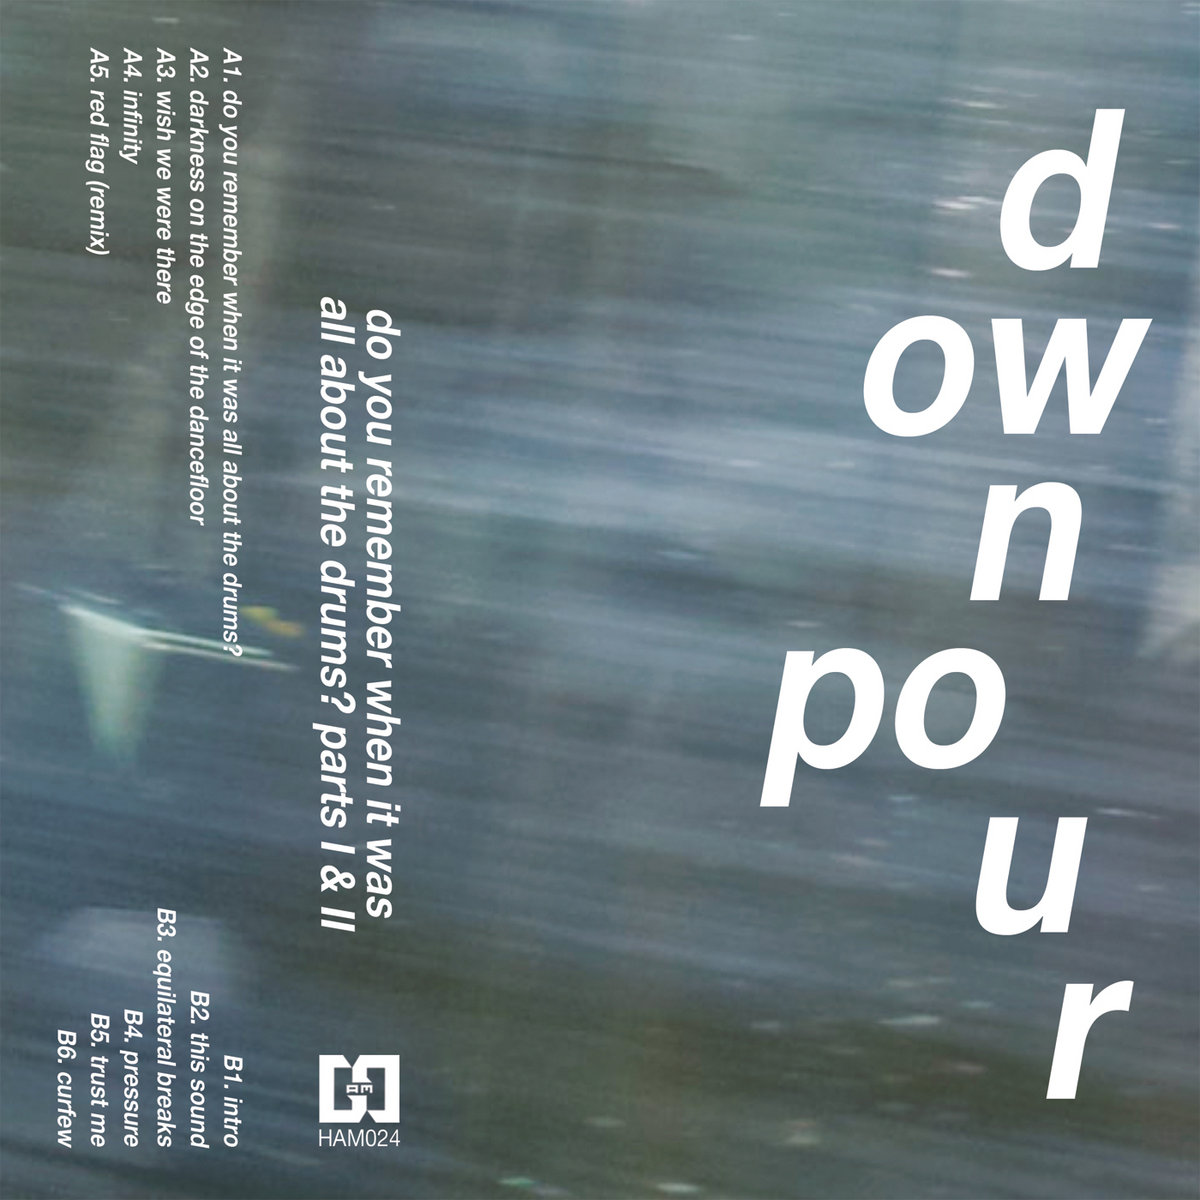 Downpour - Do You Remember When It Was All About The Drums Parts I & II (2021)